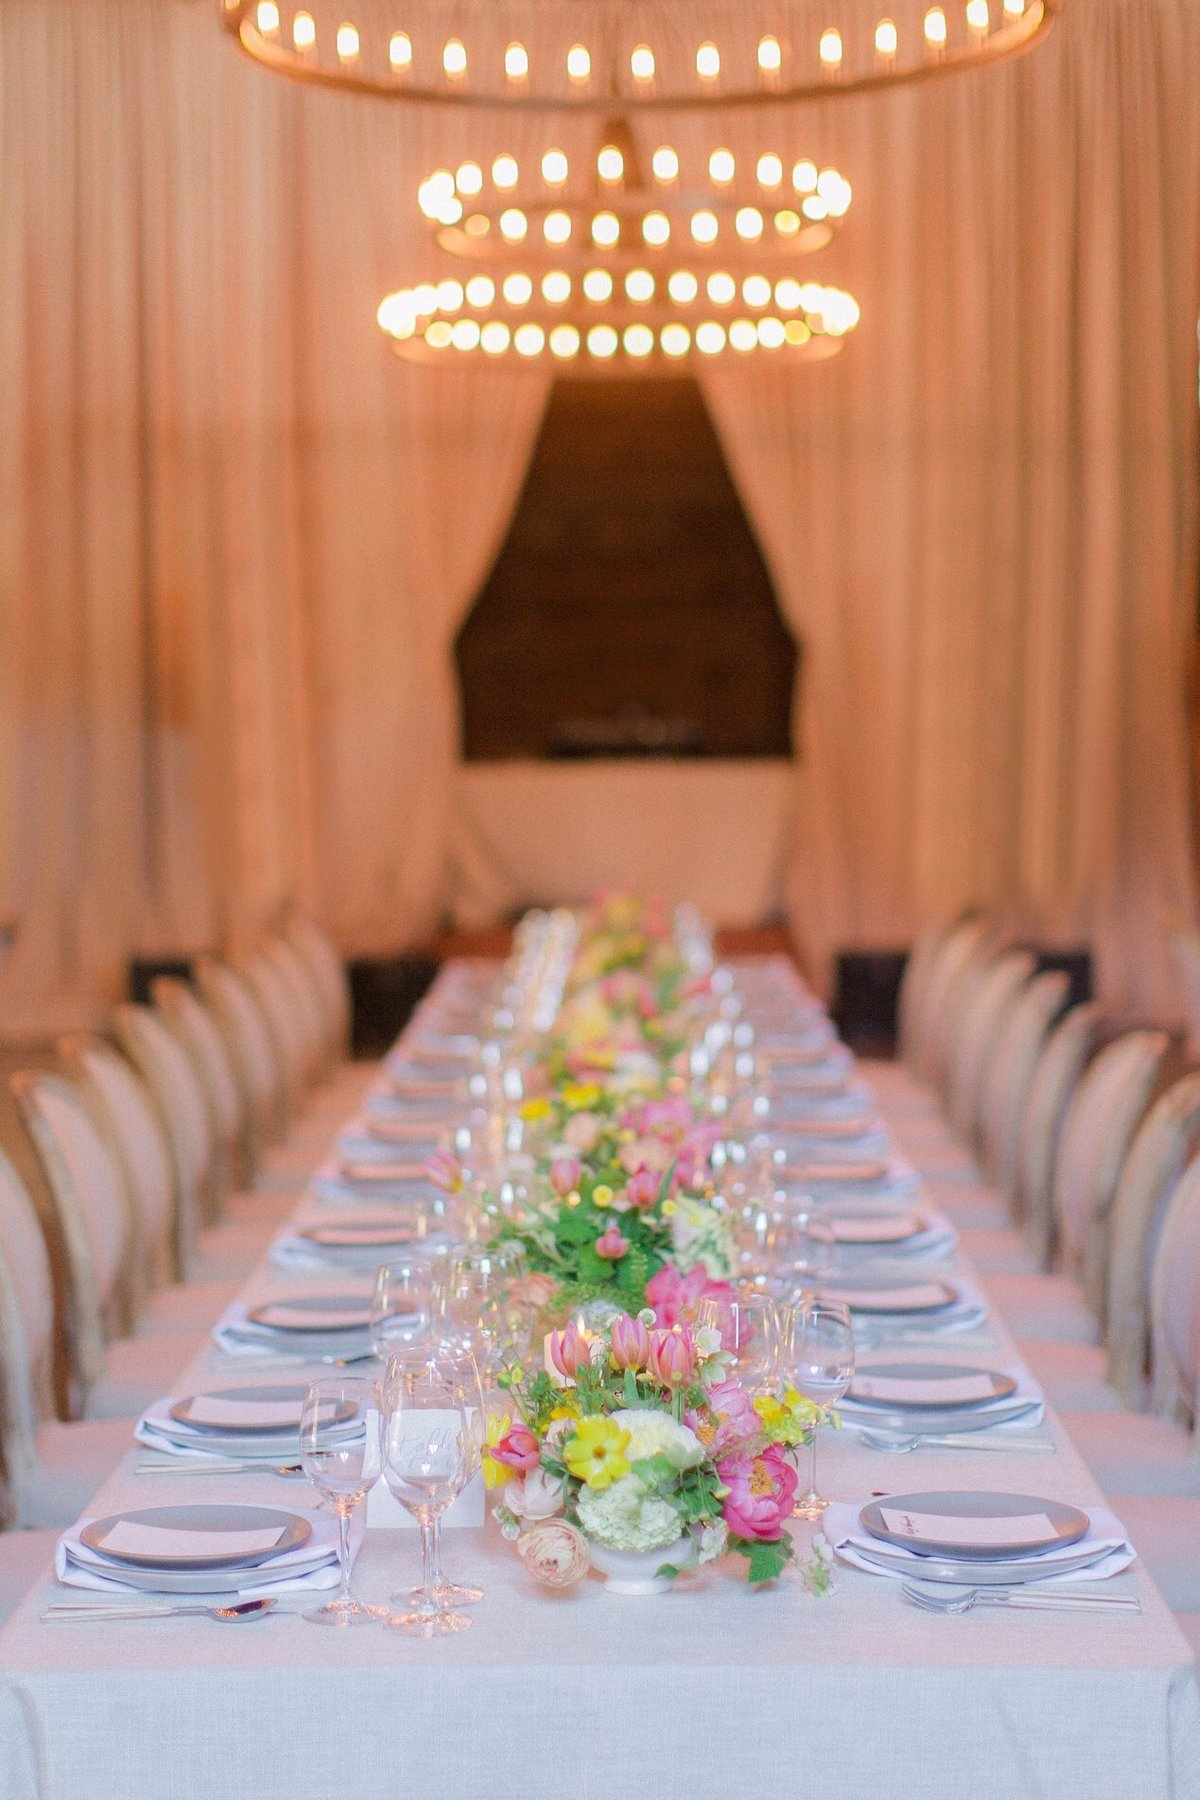 Wedding by Jenny Schneider Events at Olympia's Valley Estate in Petaluma, California. Photo by Lori Paladino Photography.